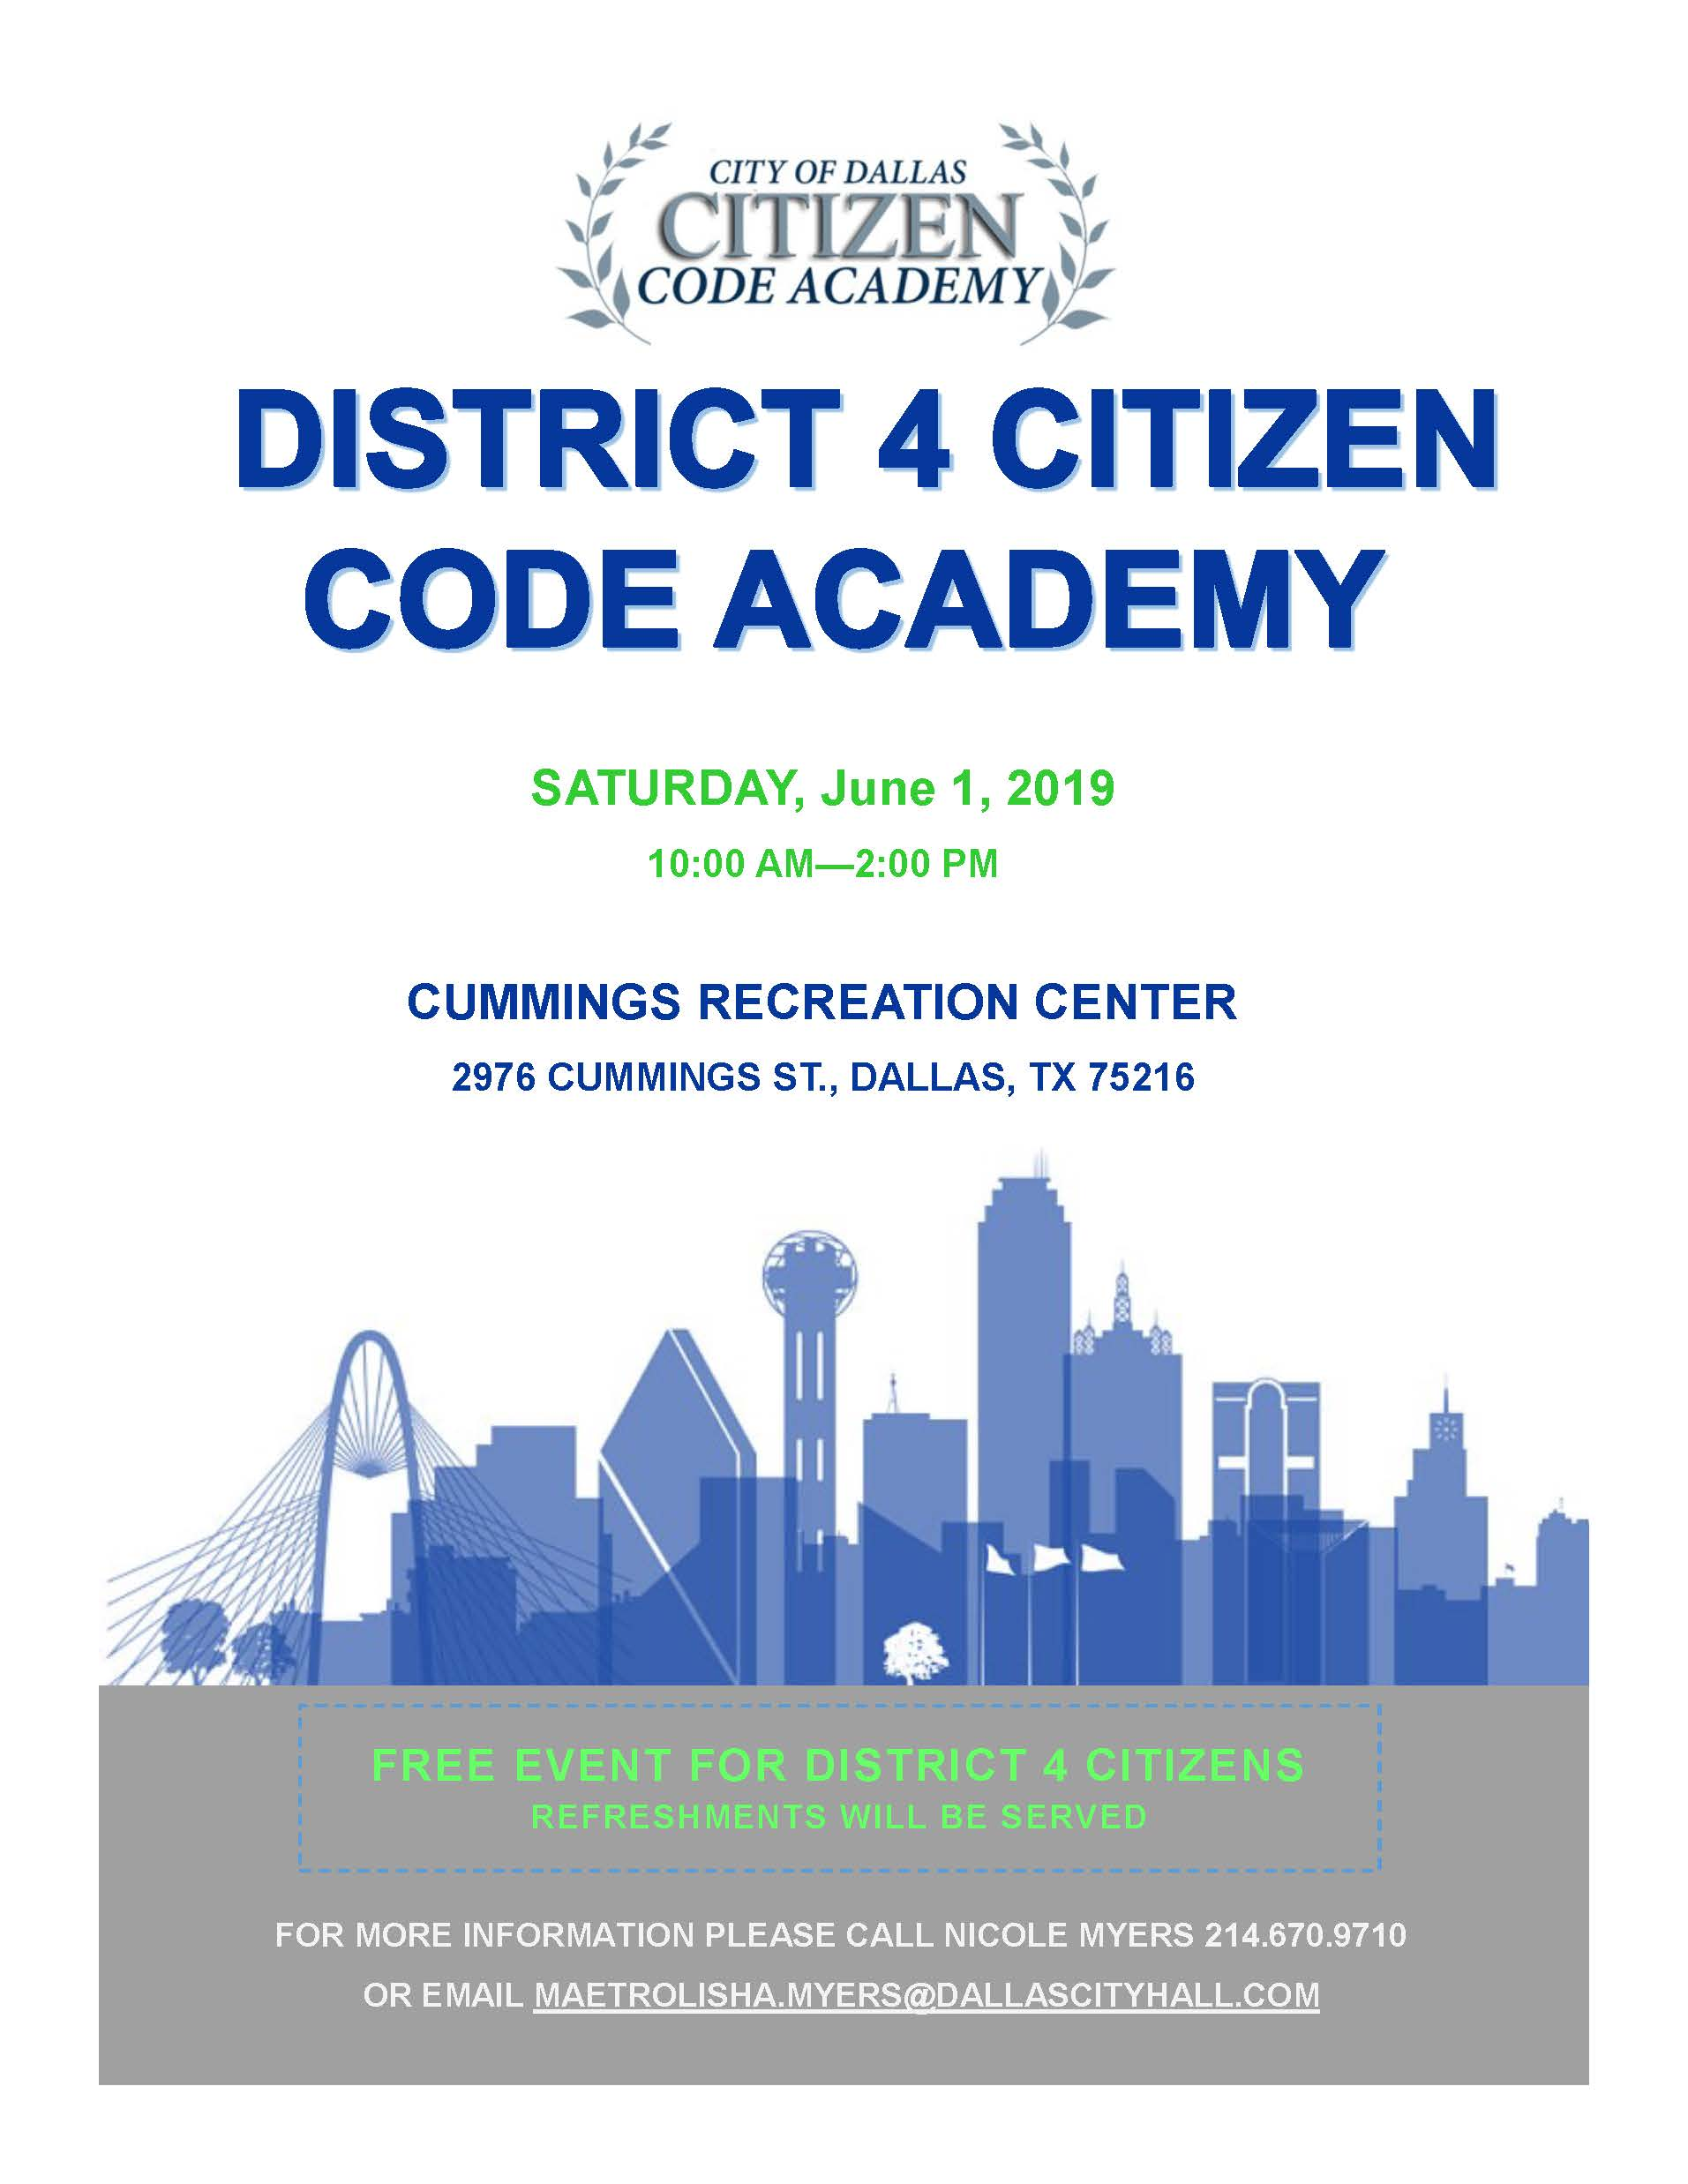 D4 Citizens Code Academy_Flyer 2.jpg